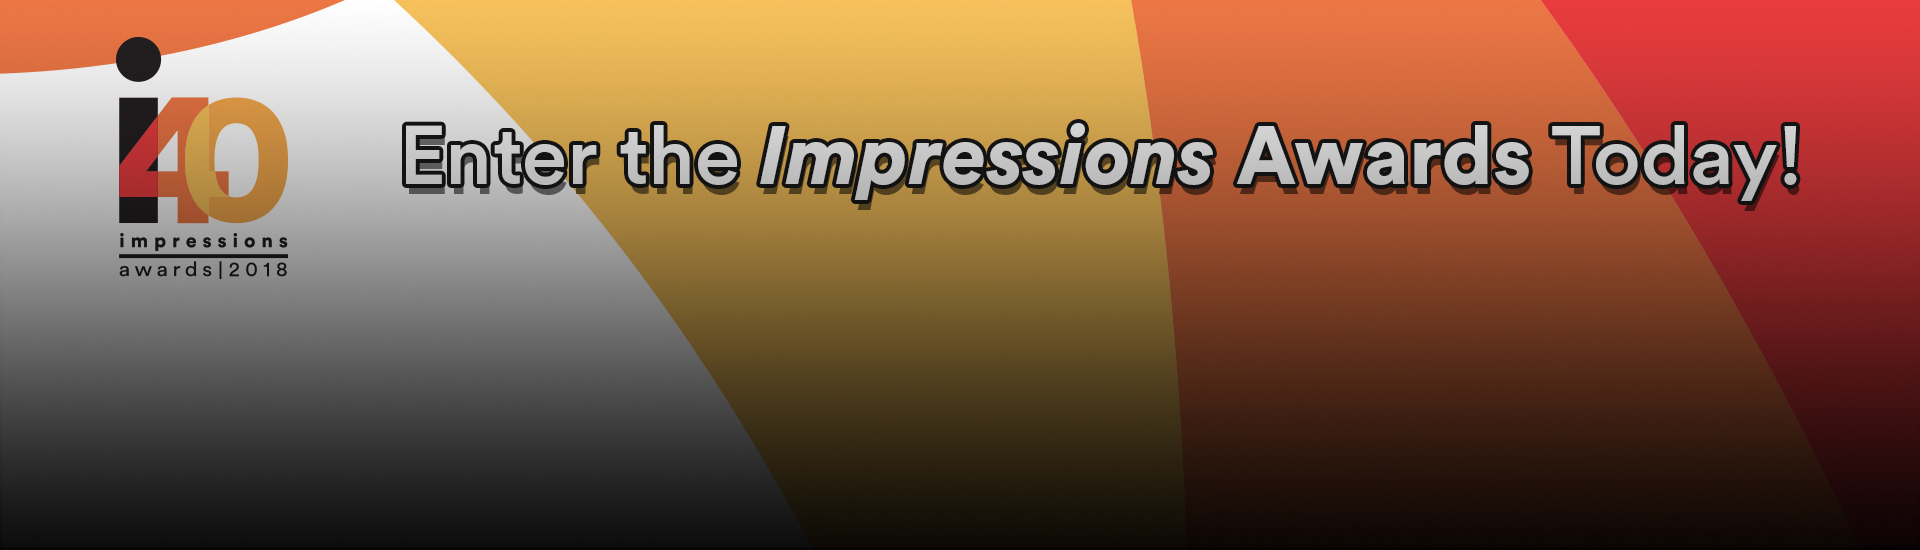 <h2><a href='https://www.impressionsmagazine.com/news/industry/impressions-awards-entry-deadline-extended/' style='color: inherit; text-decoration:none;font:inherit;'>Impressions Awards Deadline EXTENDED!</a> <hr></h2><p>  <a href='https://www.impressionsmagazine.com/news/industry/impressions-awards-entry-deadline-extended/' style='color: inherit; text-decoration:none; font-weight:700;font-size:24px;'>The industry&#039;s most prestigious competition&#039;s deadline for entry has been extended to Sept. 14. Click here for more information.</a></p>